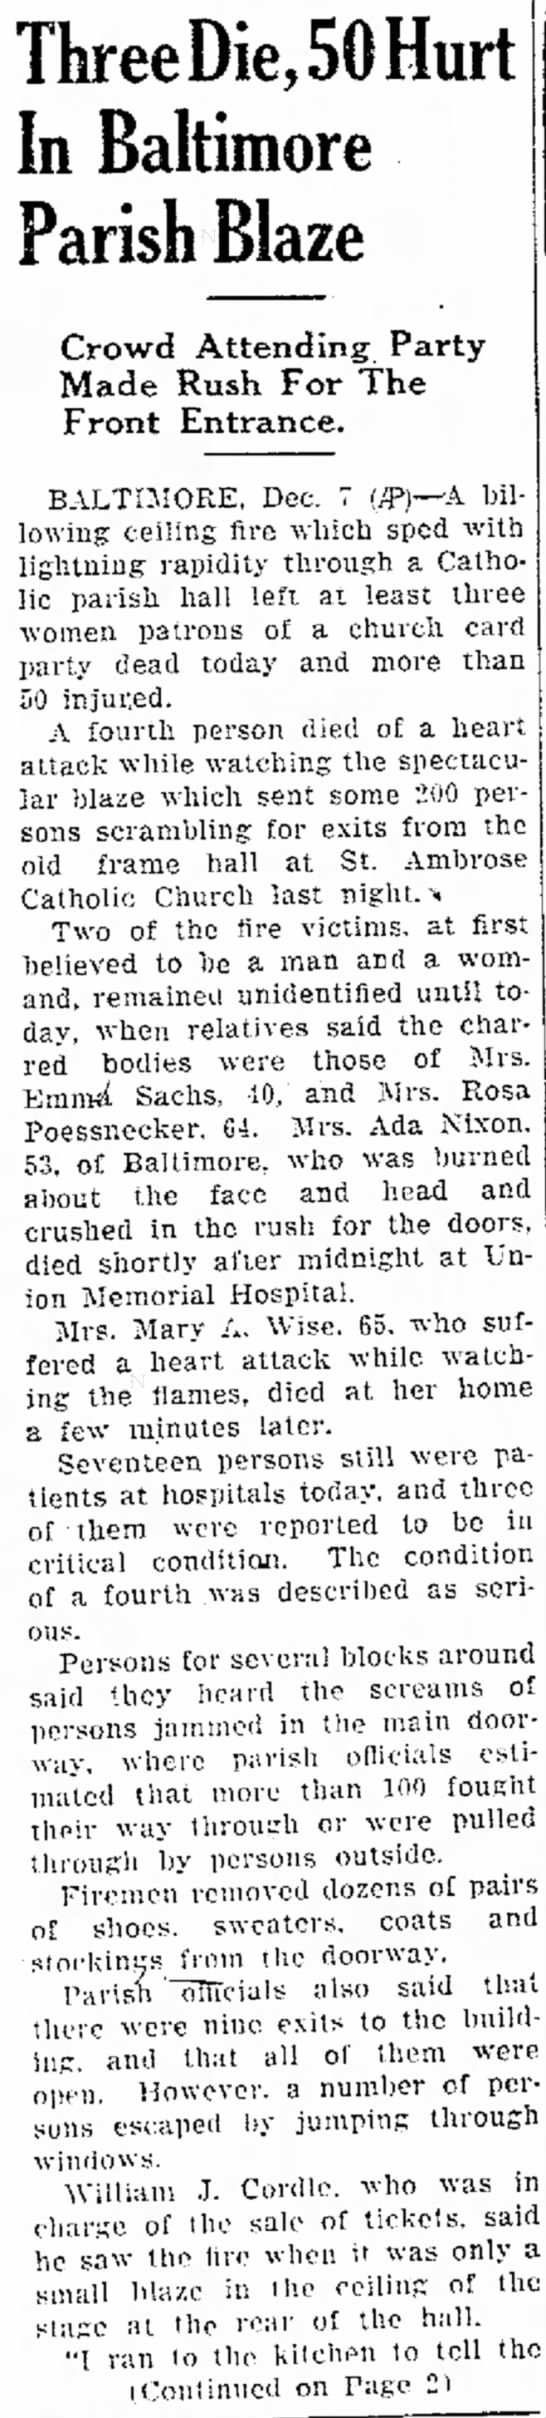 St Ambrose Fire - Dec 7, 1944 - Hagerstown Daily Mail - ThreeDie,50Hurt In Baltimore Parish Blaze Crowd...